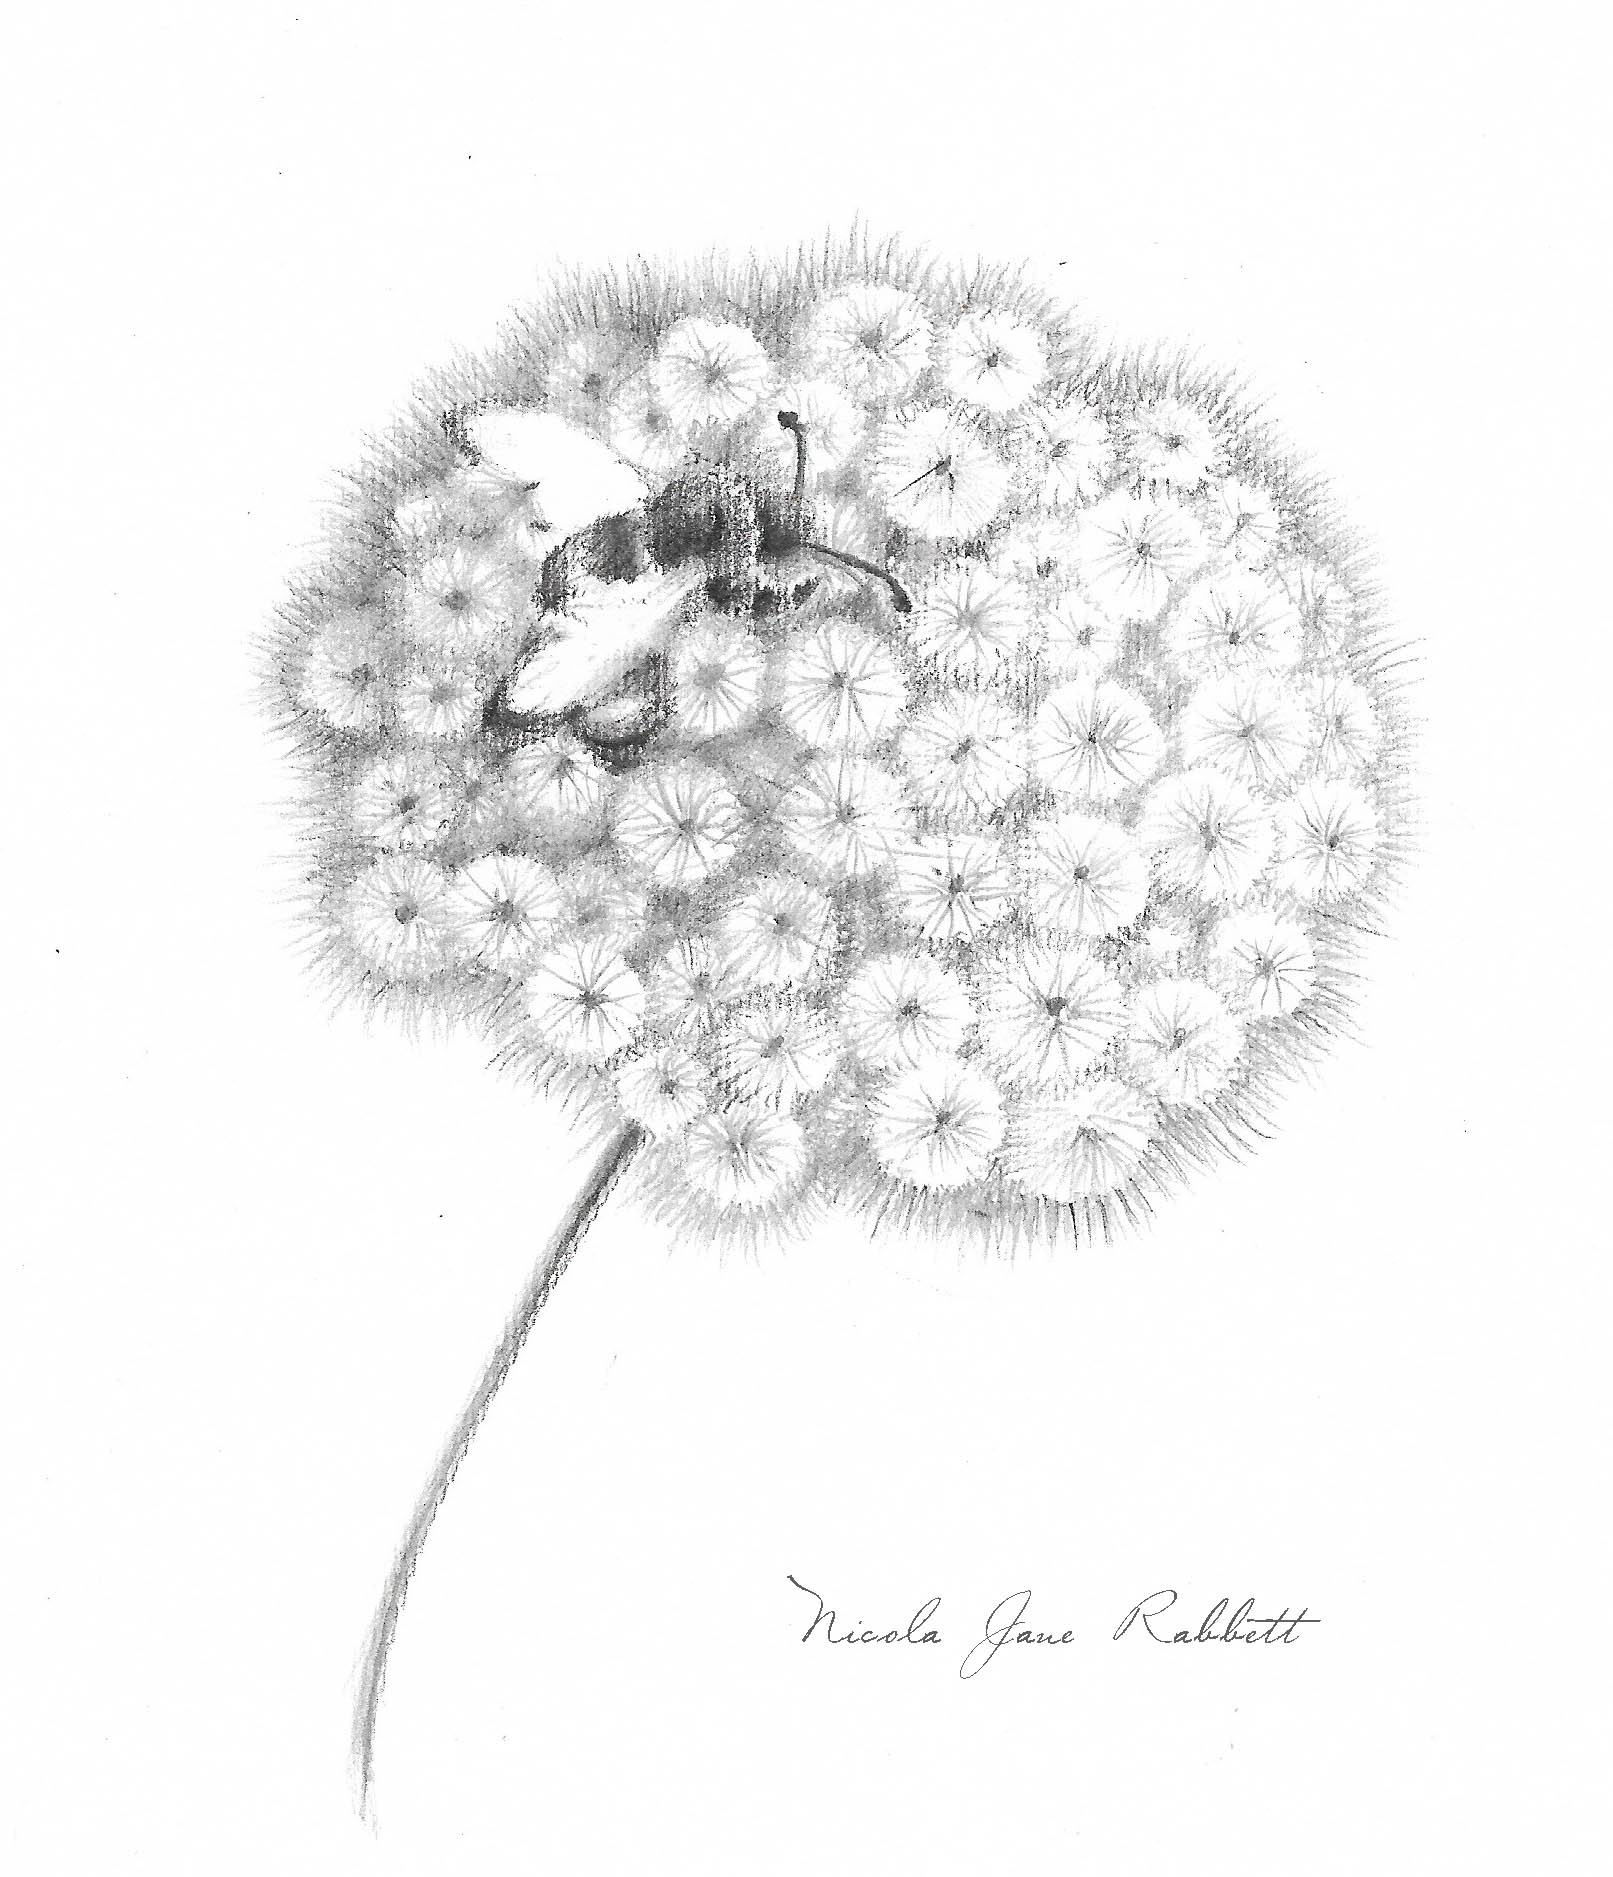 bumblebee & Dandelion Clock - I have been working on new monochrome drawings to exhibit @Chester-Arts-Fair.today. This one's a work in progress, but I'll hopefully have it finished soon.